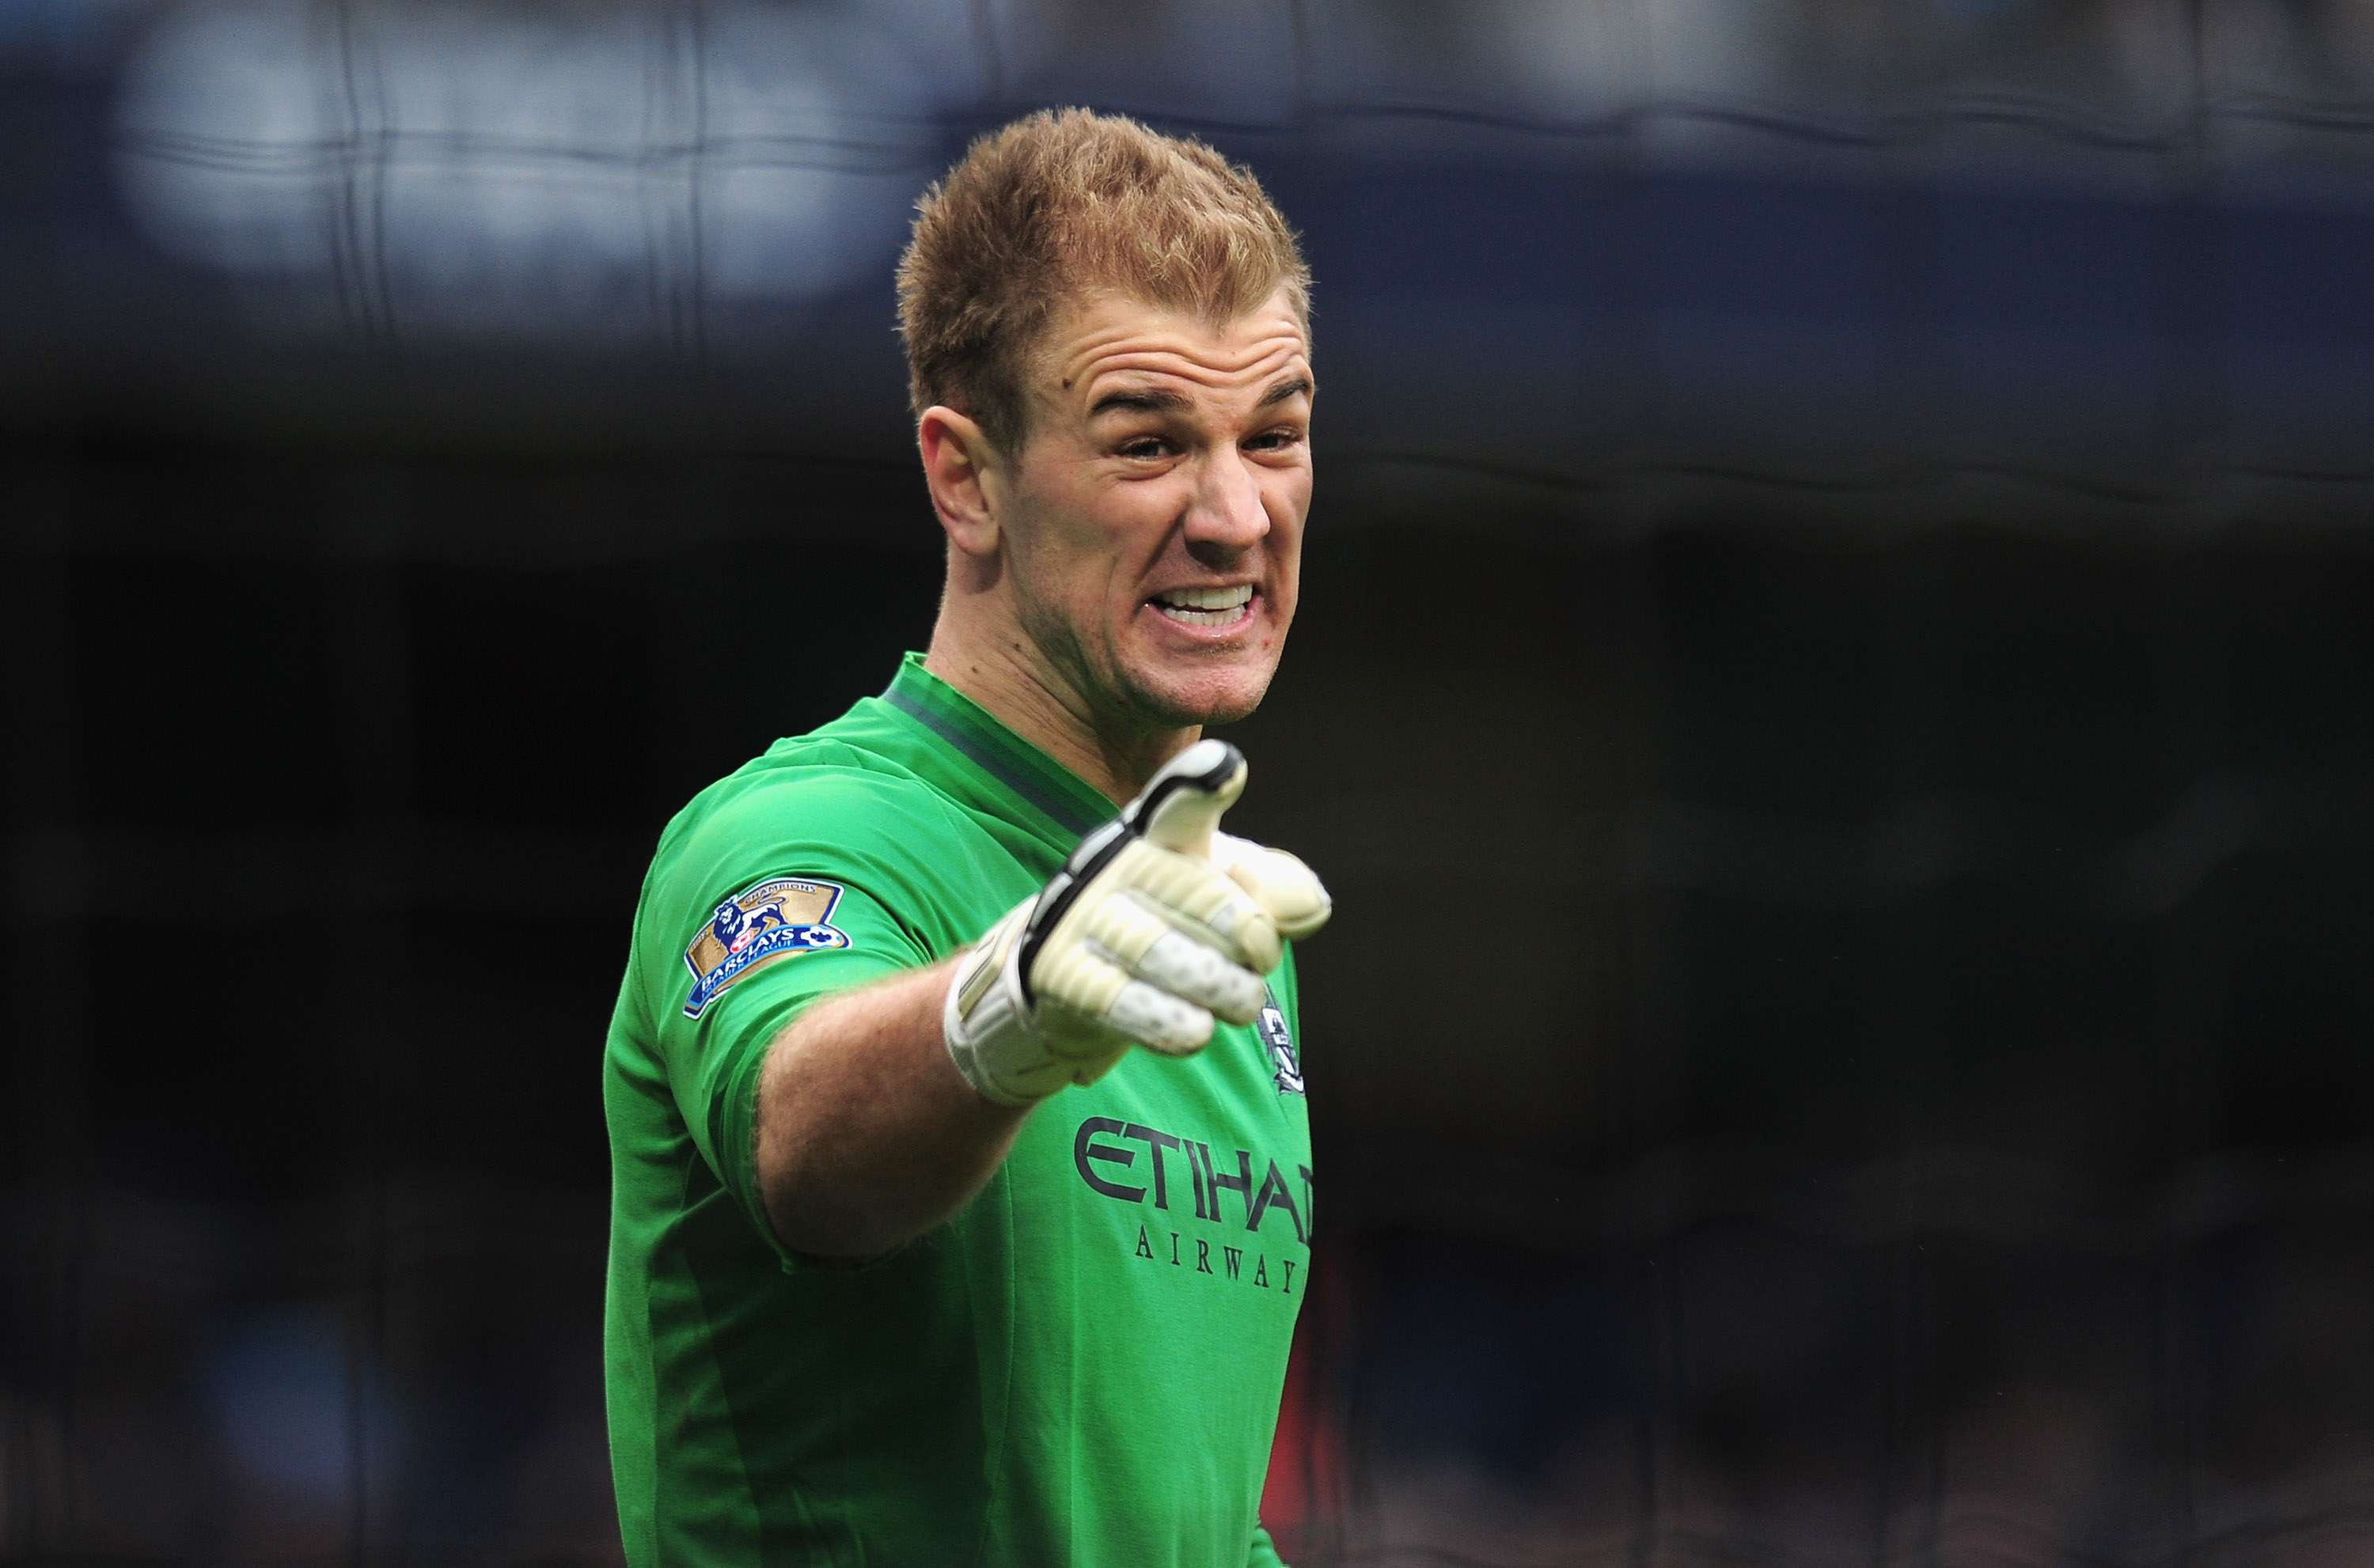 JOE HART: In 26-year-old Joe Hart, England coach Roy Hodgson has a more reliable stopper between the posts, despite mishaps seeing him dropped by Manchester City for a time this season. The blunders were uncharacteristic for one of England's most reliable performers at Euro 2012, but Hart went on to help City win the Premier League. Foto: Getty Images